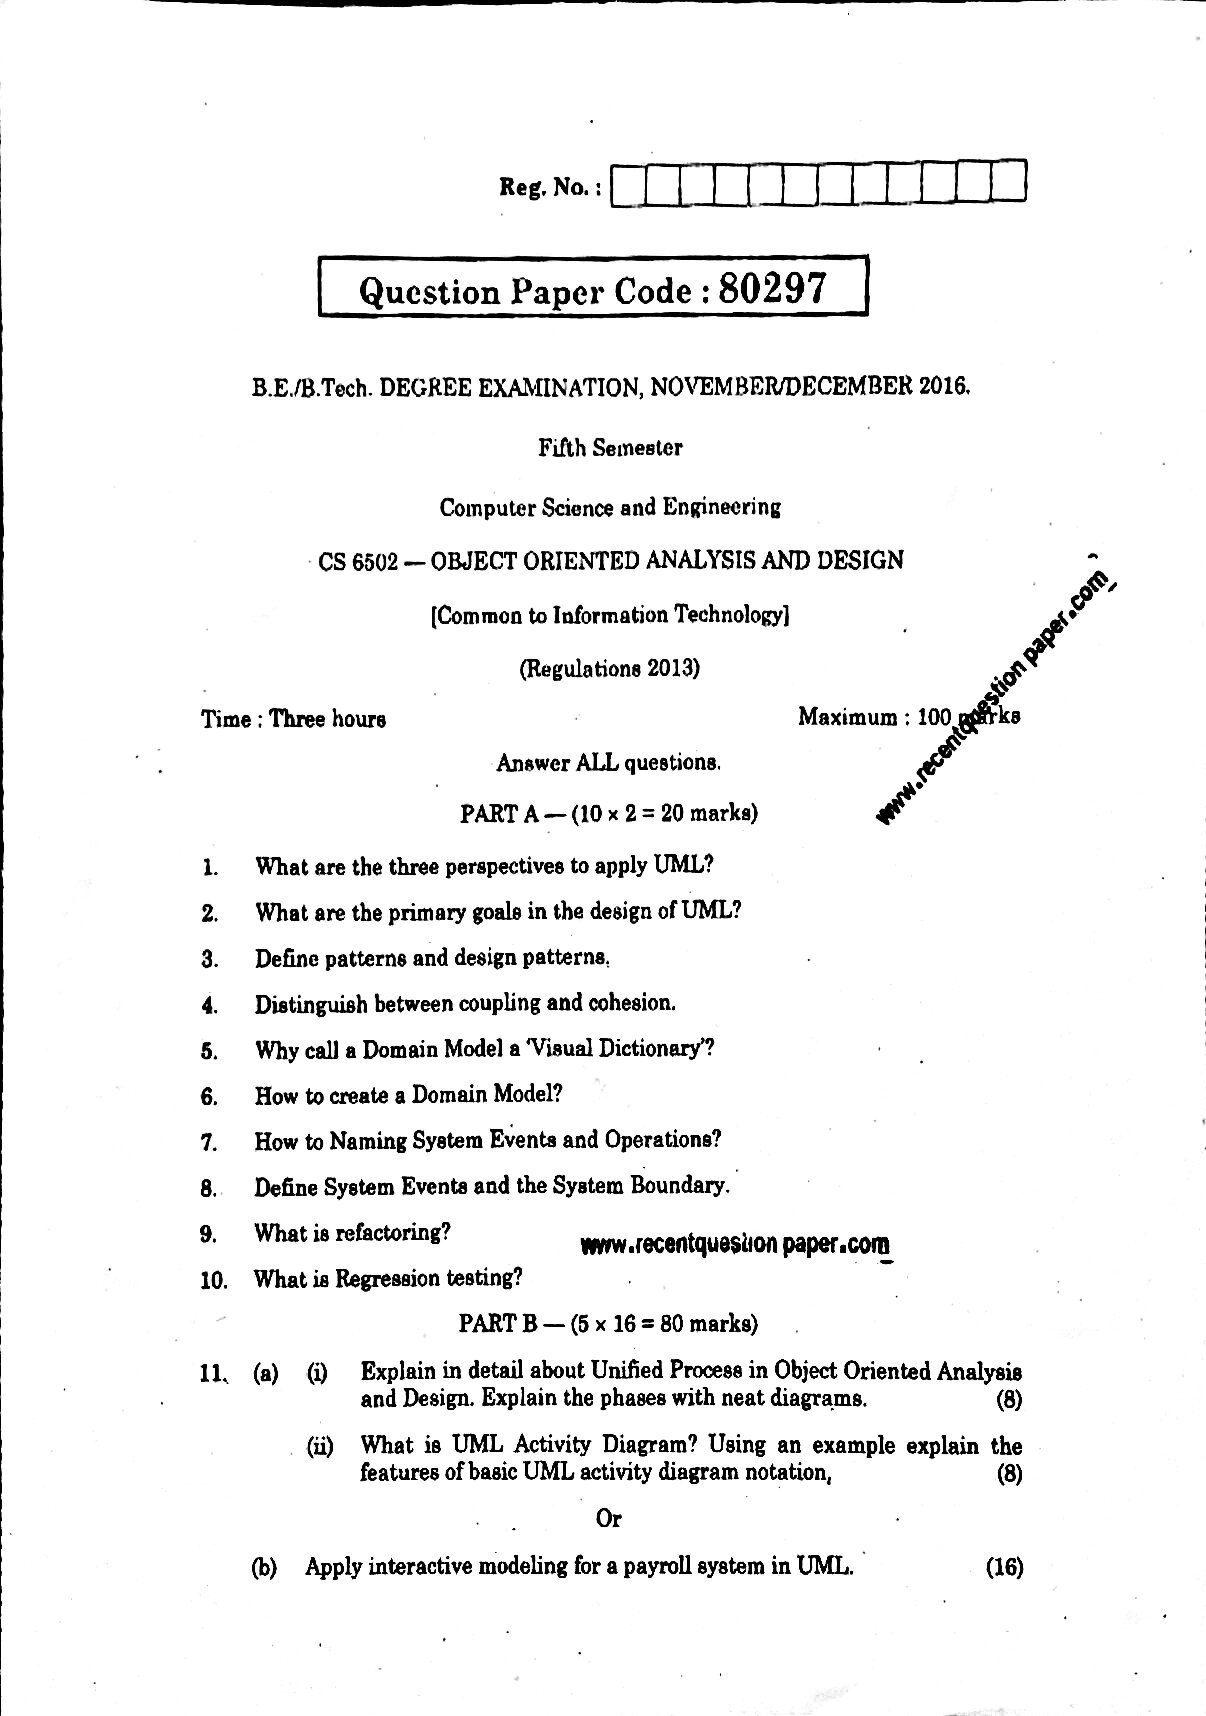 CS6502 Object Oriented Analysis And Design Anna University Question paper Nov/Dec 2016